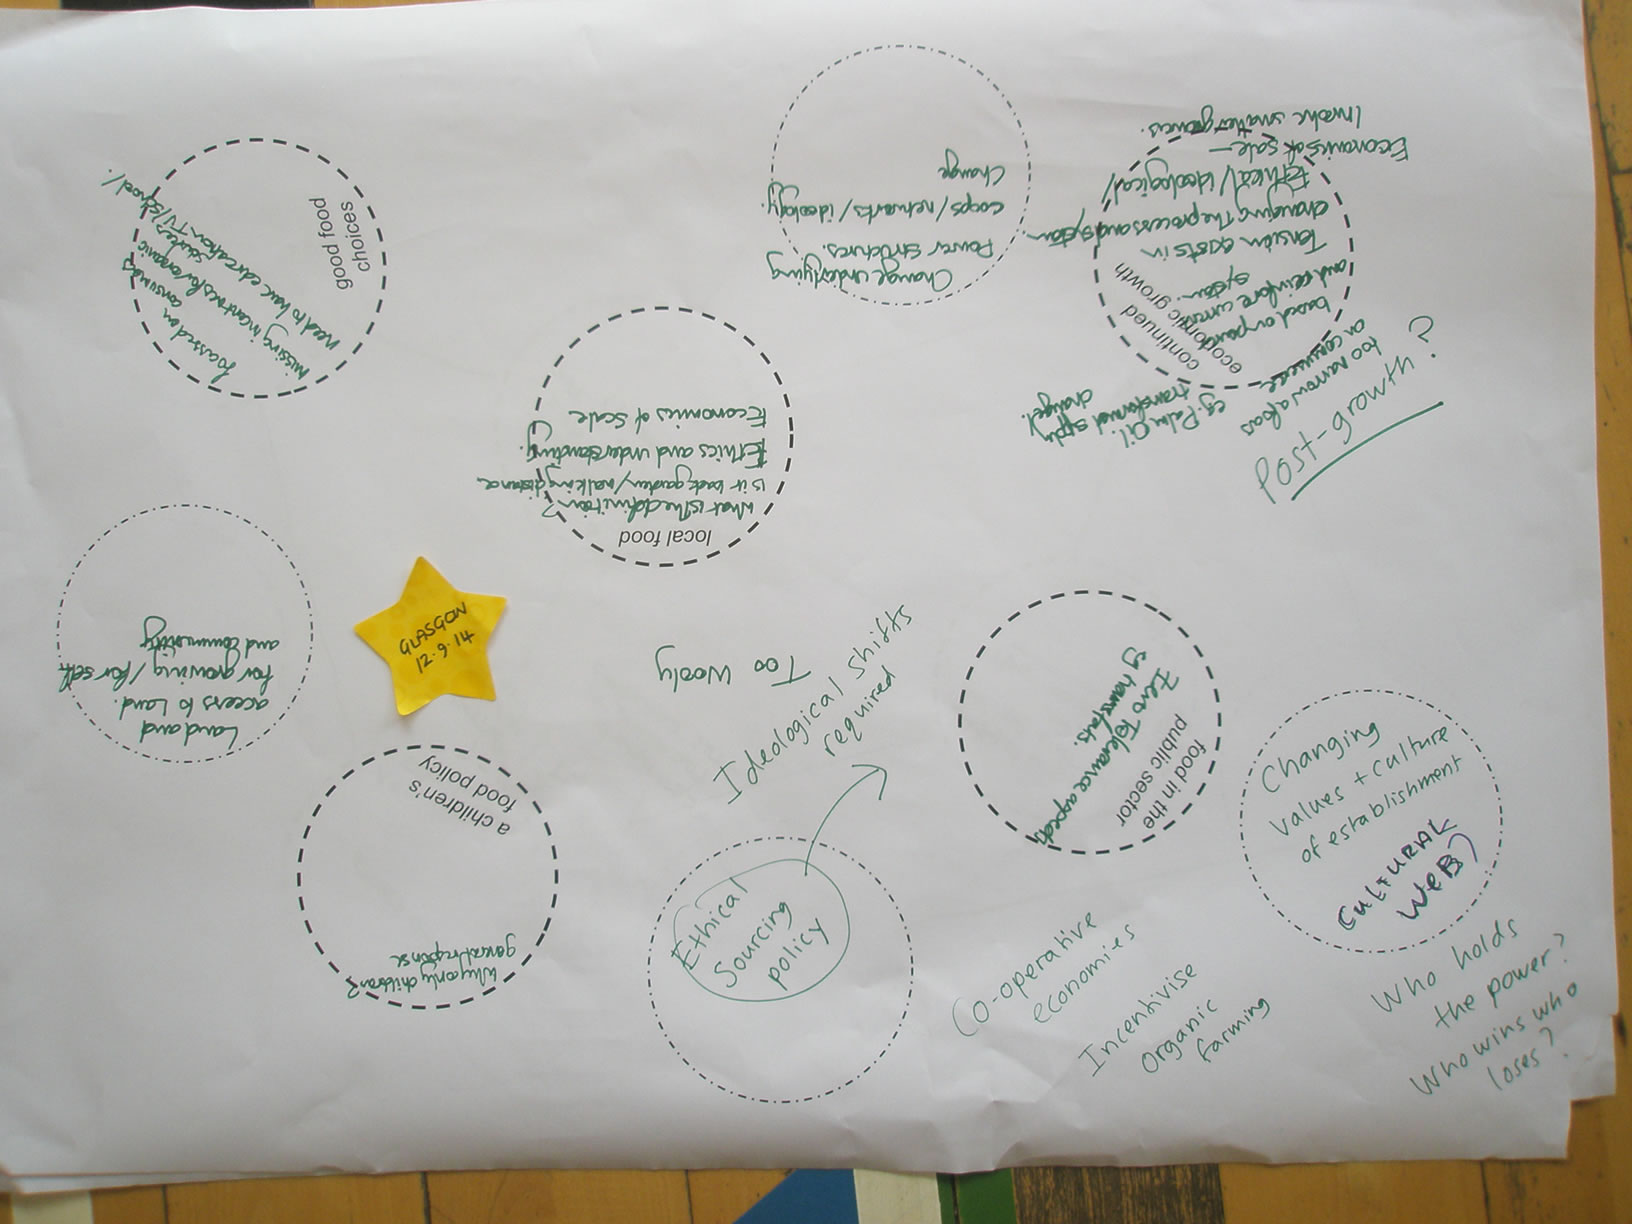 Glasgow consultation event 42